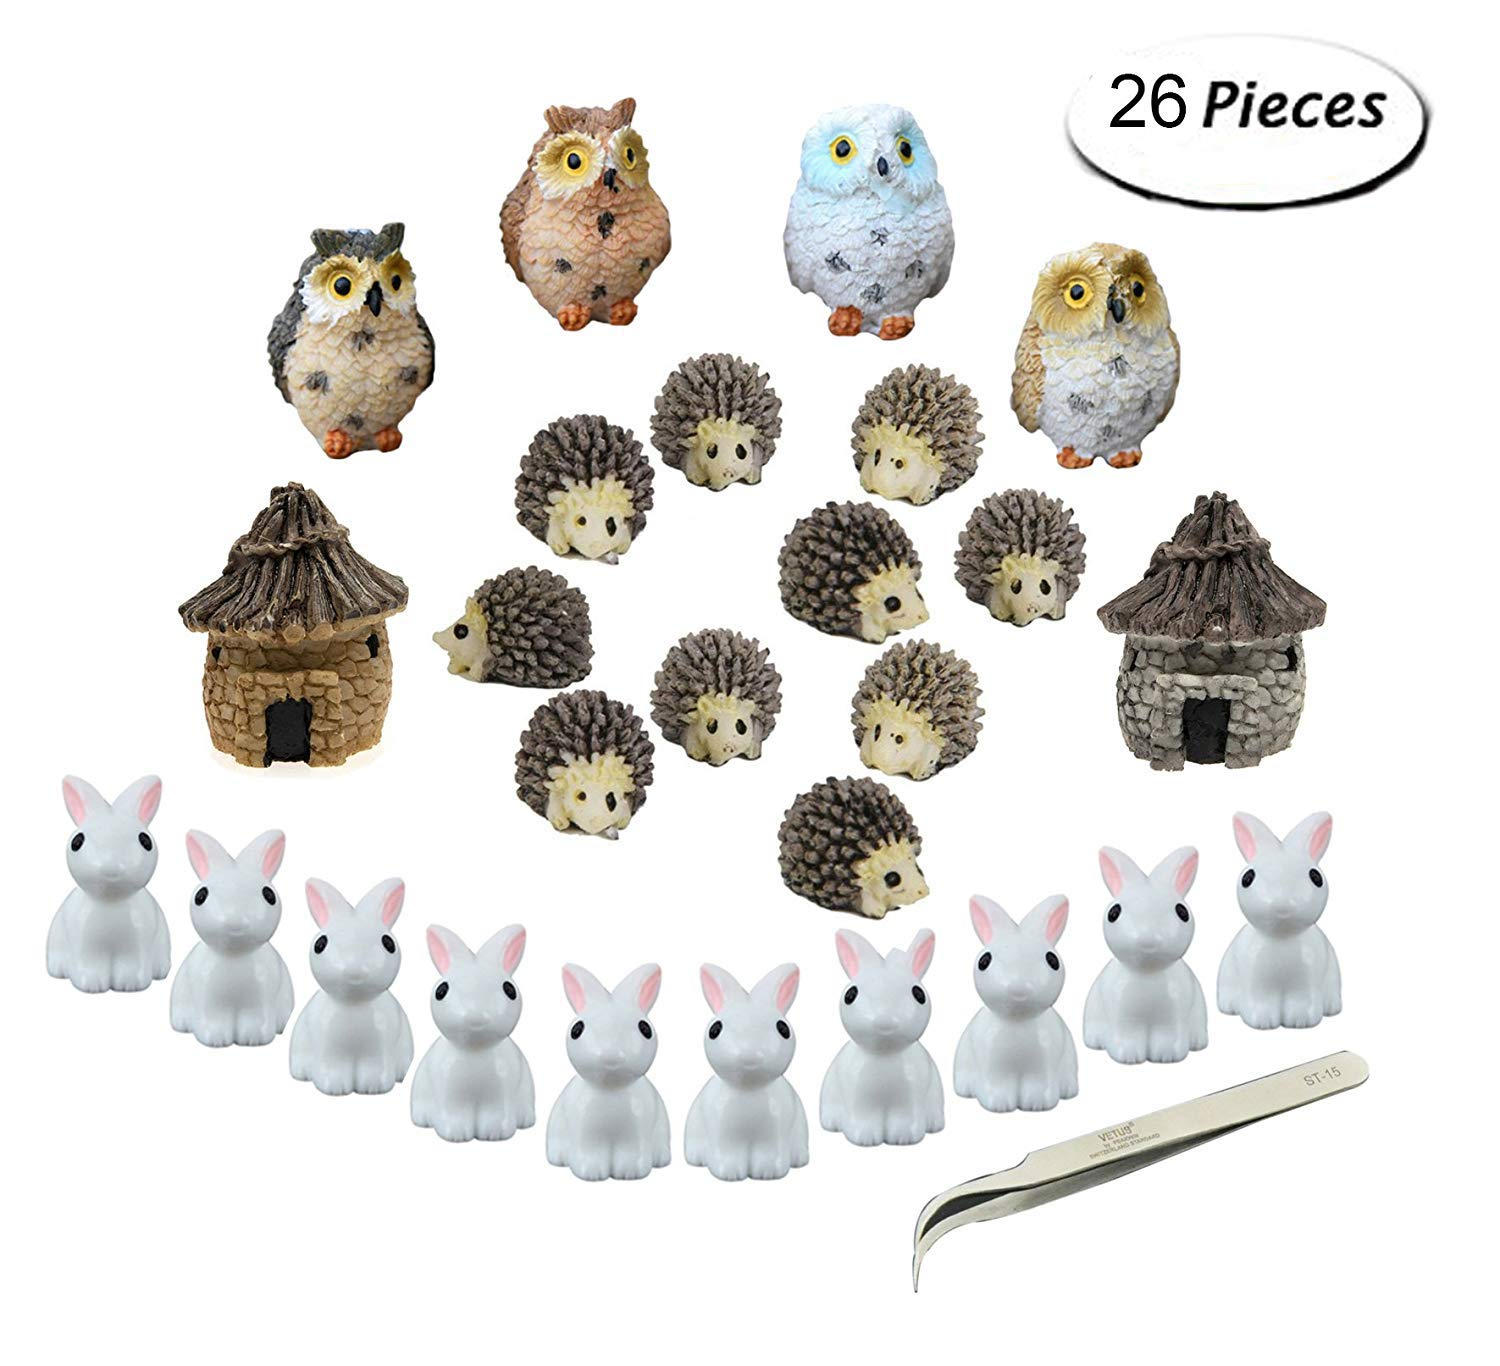 Fashionclubs Miniature Garden Ornaments, 24pcs Miniature Ornaments Kit Set Fairy Garden Figurines Accessories DIY Dollhouse Plant Pot Decoration 1pcs Tweezer